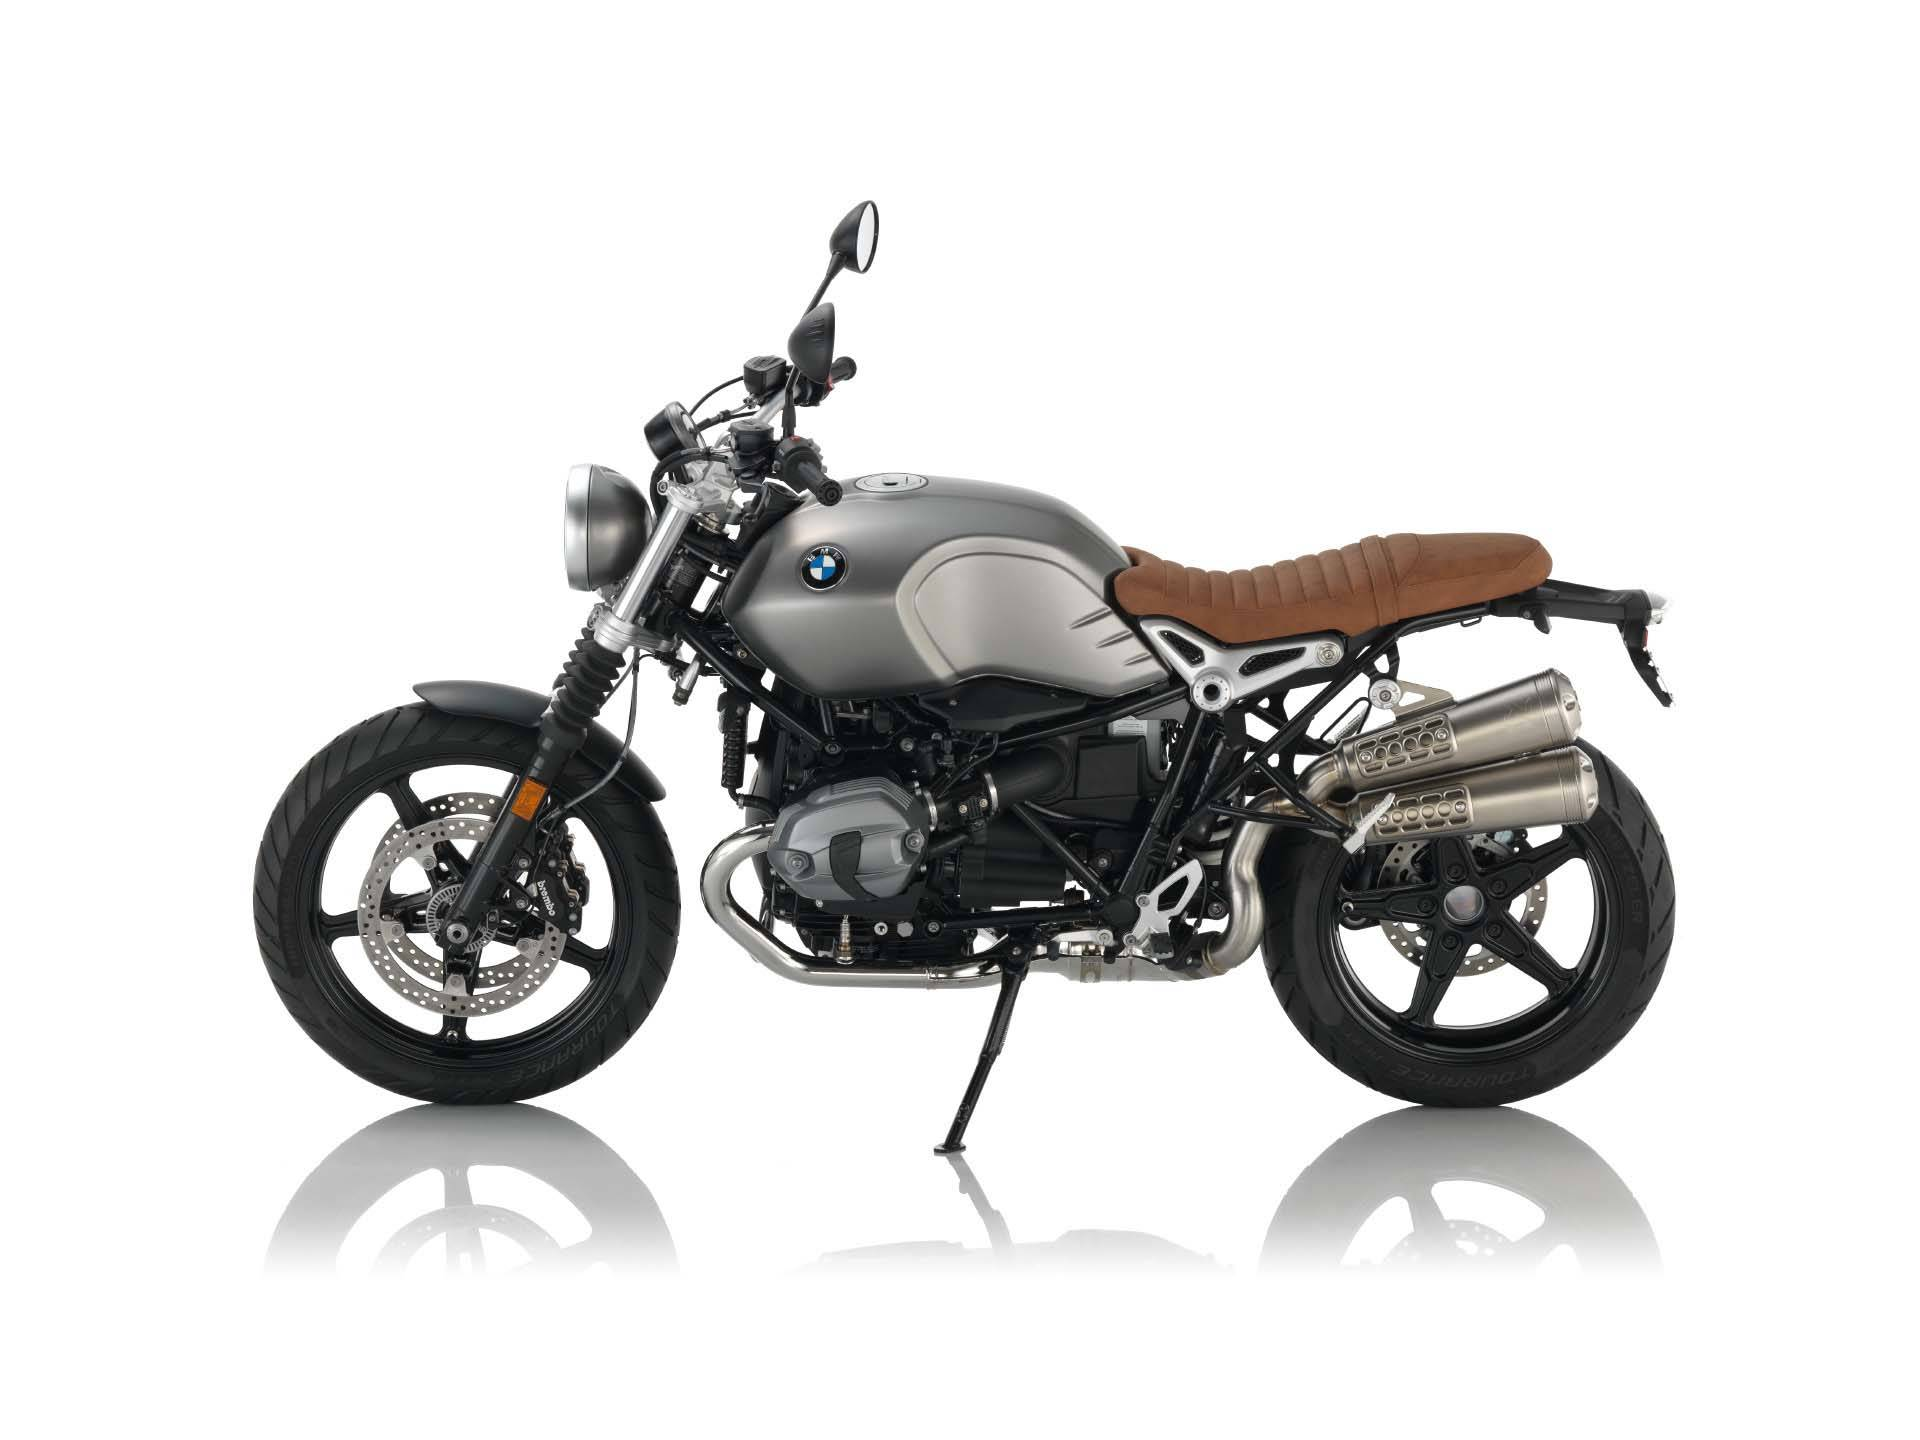 r ninet scrambler gold coast bmw motorrad. Black Bedroom Furniture Sets. Home Design Ideas